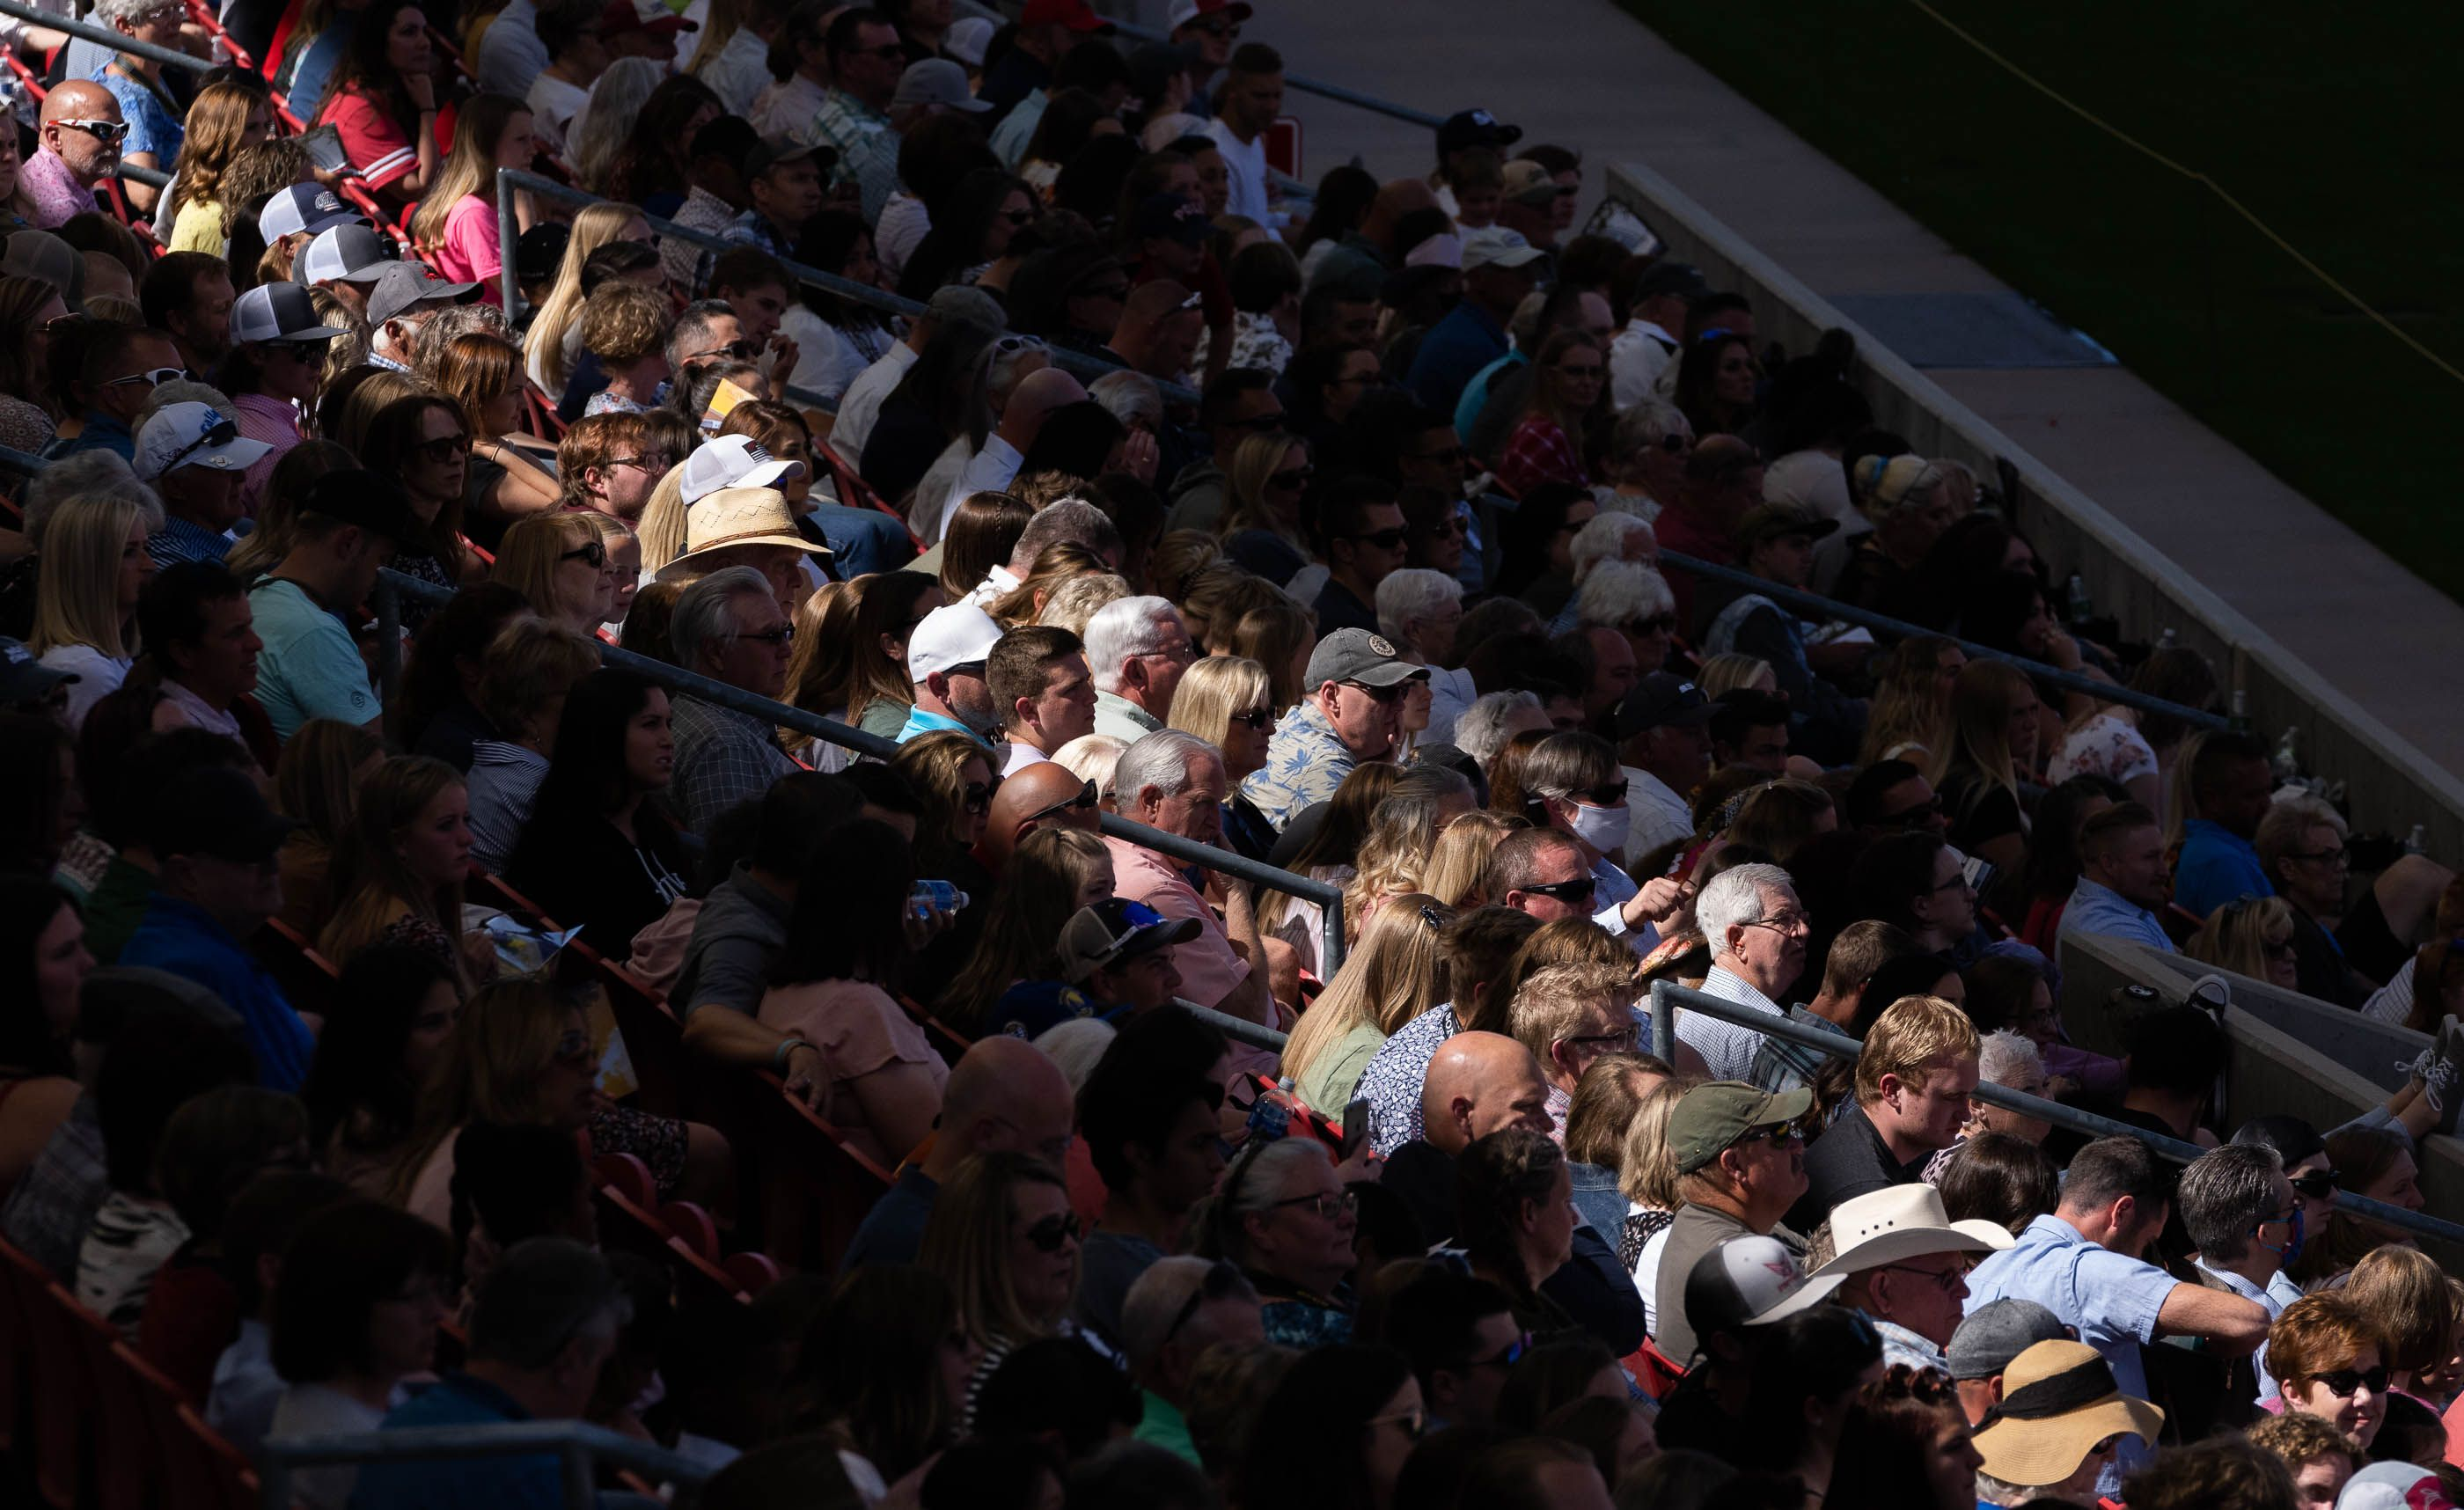 (Francisco Kjolseth | The Salt Lake Tribune) Friends and family pack the shady side of Rio Tinto Stadium for commencement ceremonies for Westlake High School on Thursday, May 27, 2021.